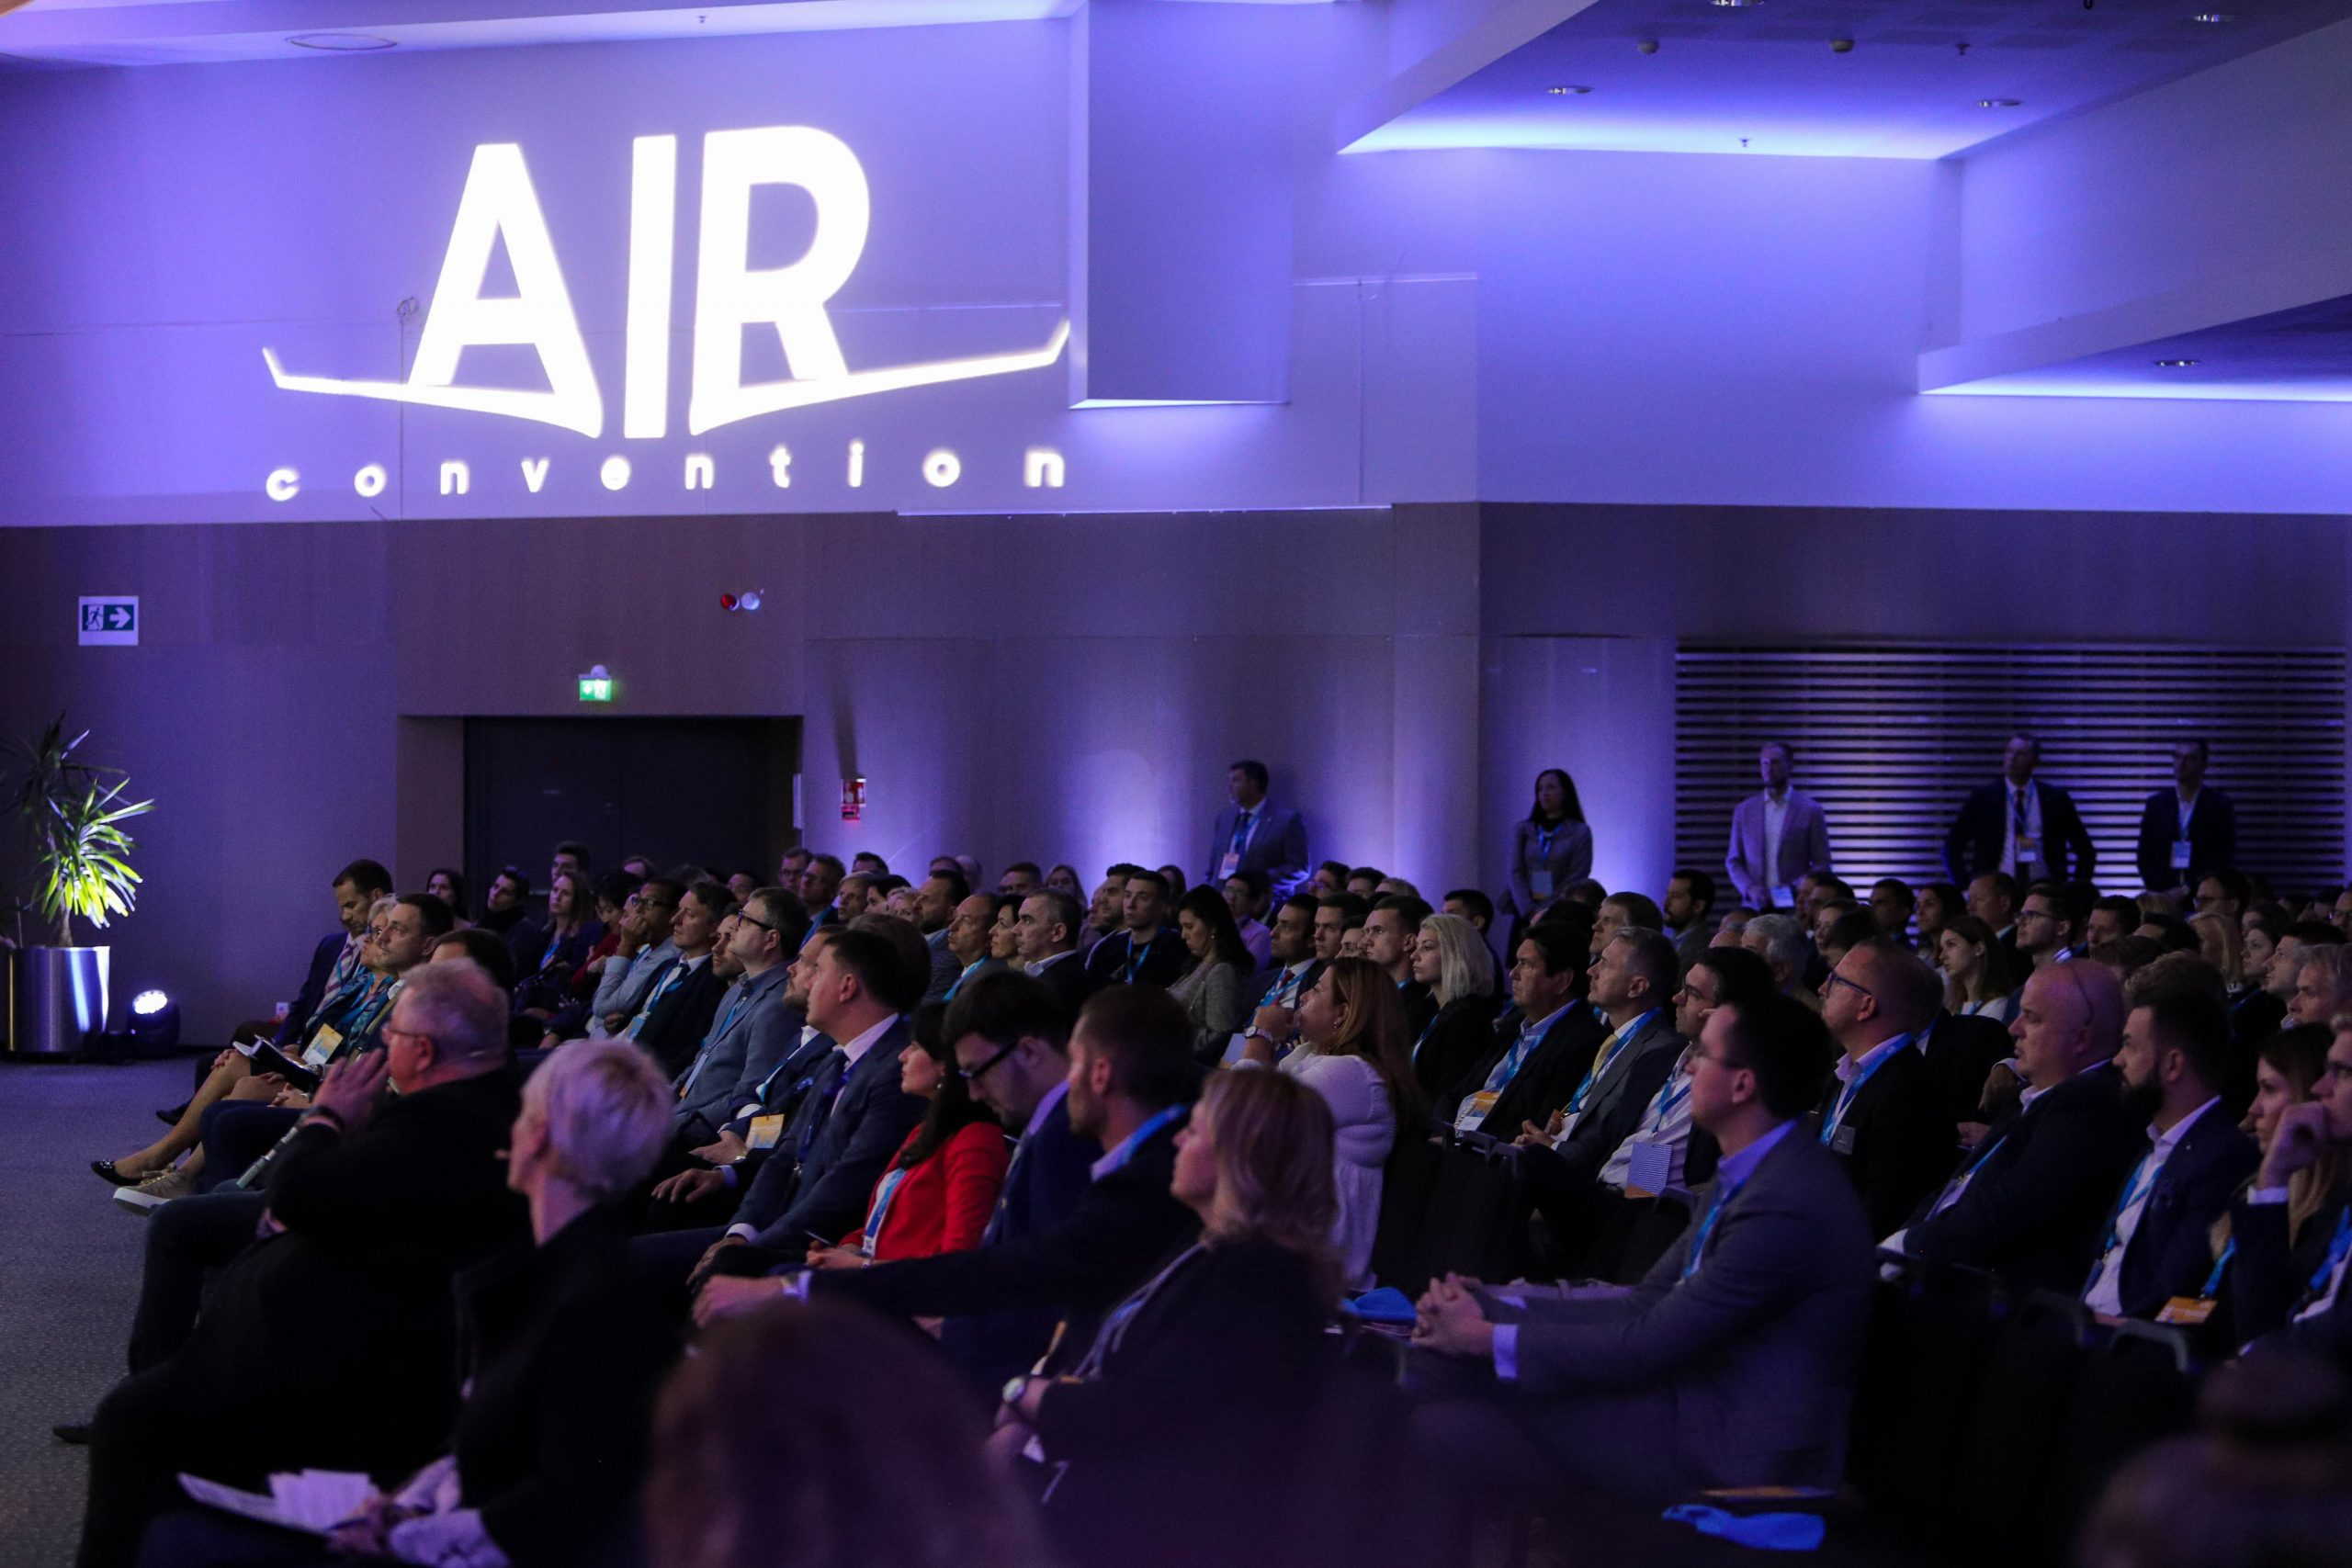 Delegationsreise zur Air Convention 2019 in Vilnius